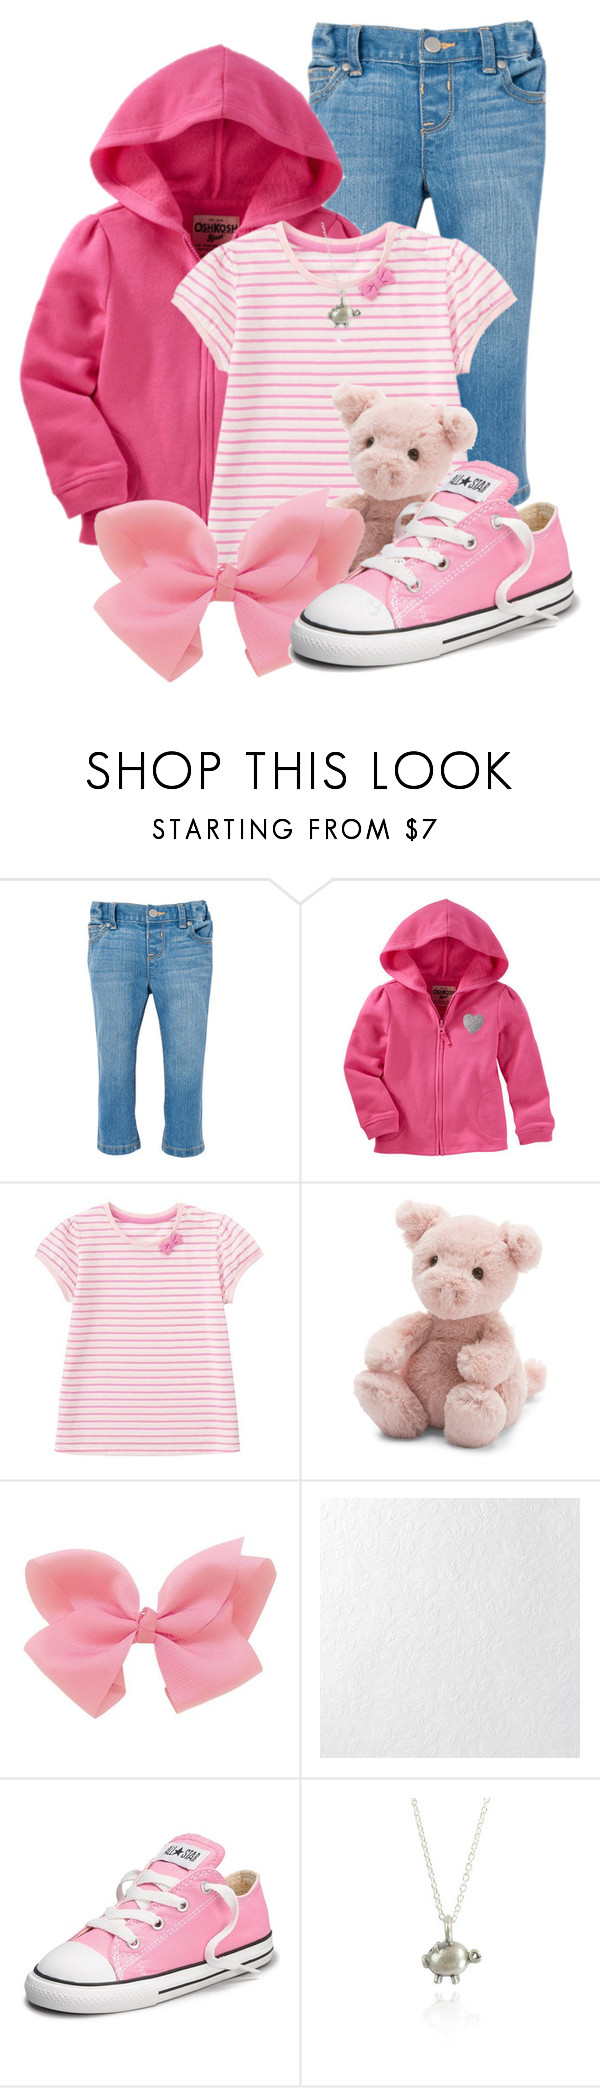 """Piglet"" by darksyngr ❤ liked on Polyvore featuring Uniqlo, Jellycat, Graham & Brown, Converse and Bug"